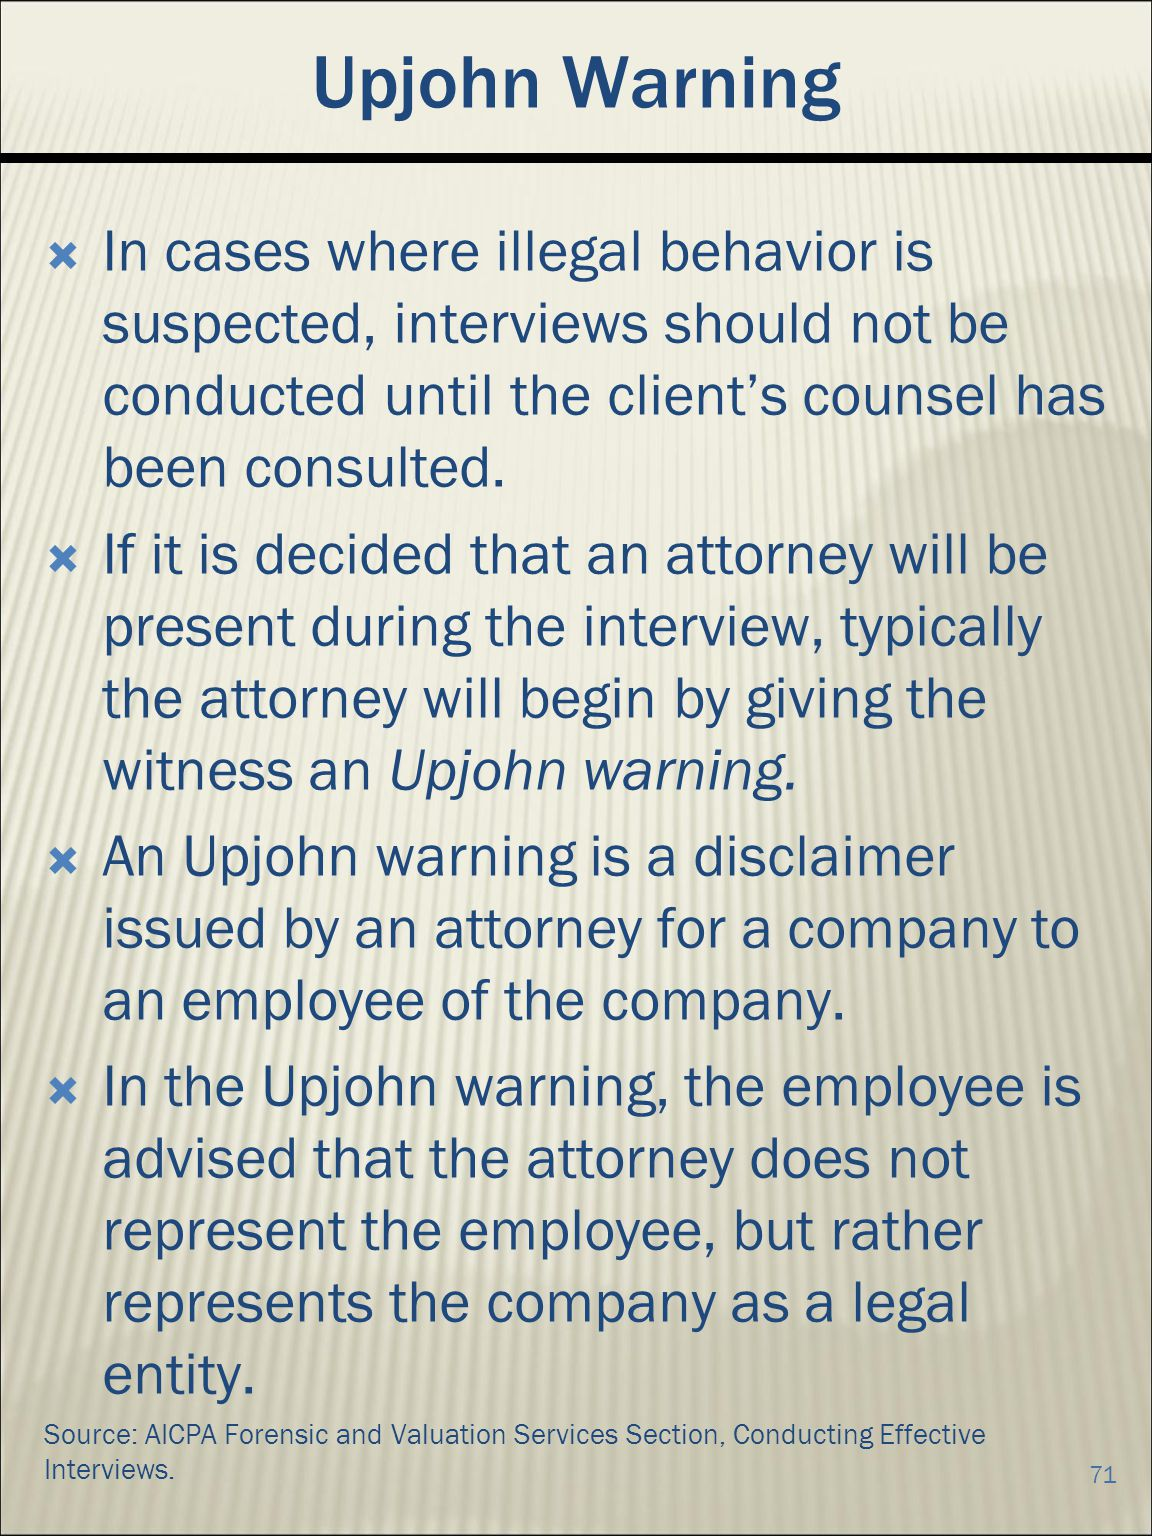 Upjohn Warning In cases where illegal behavior is suspected, interviews should not be conducted until the client's counsel has been consulted.